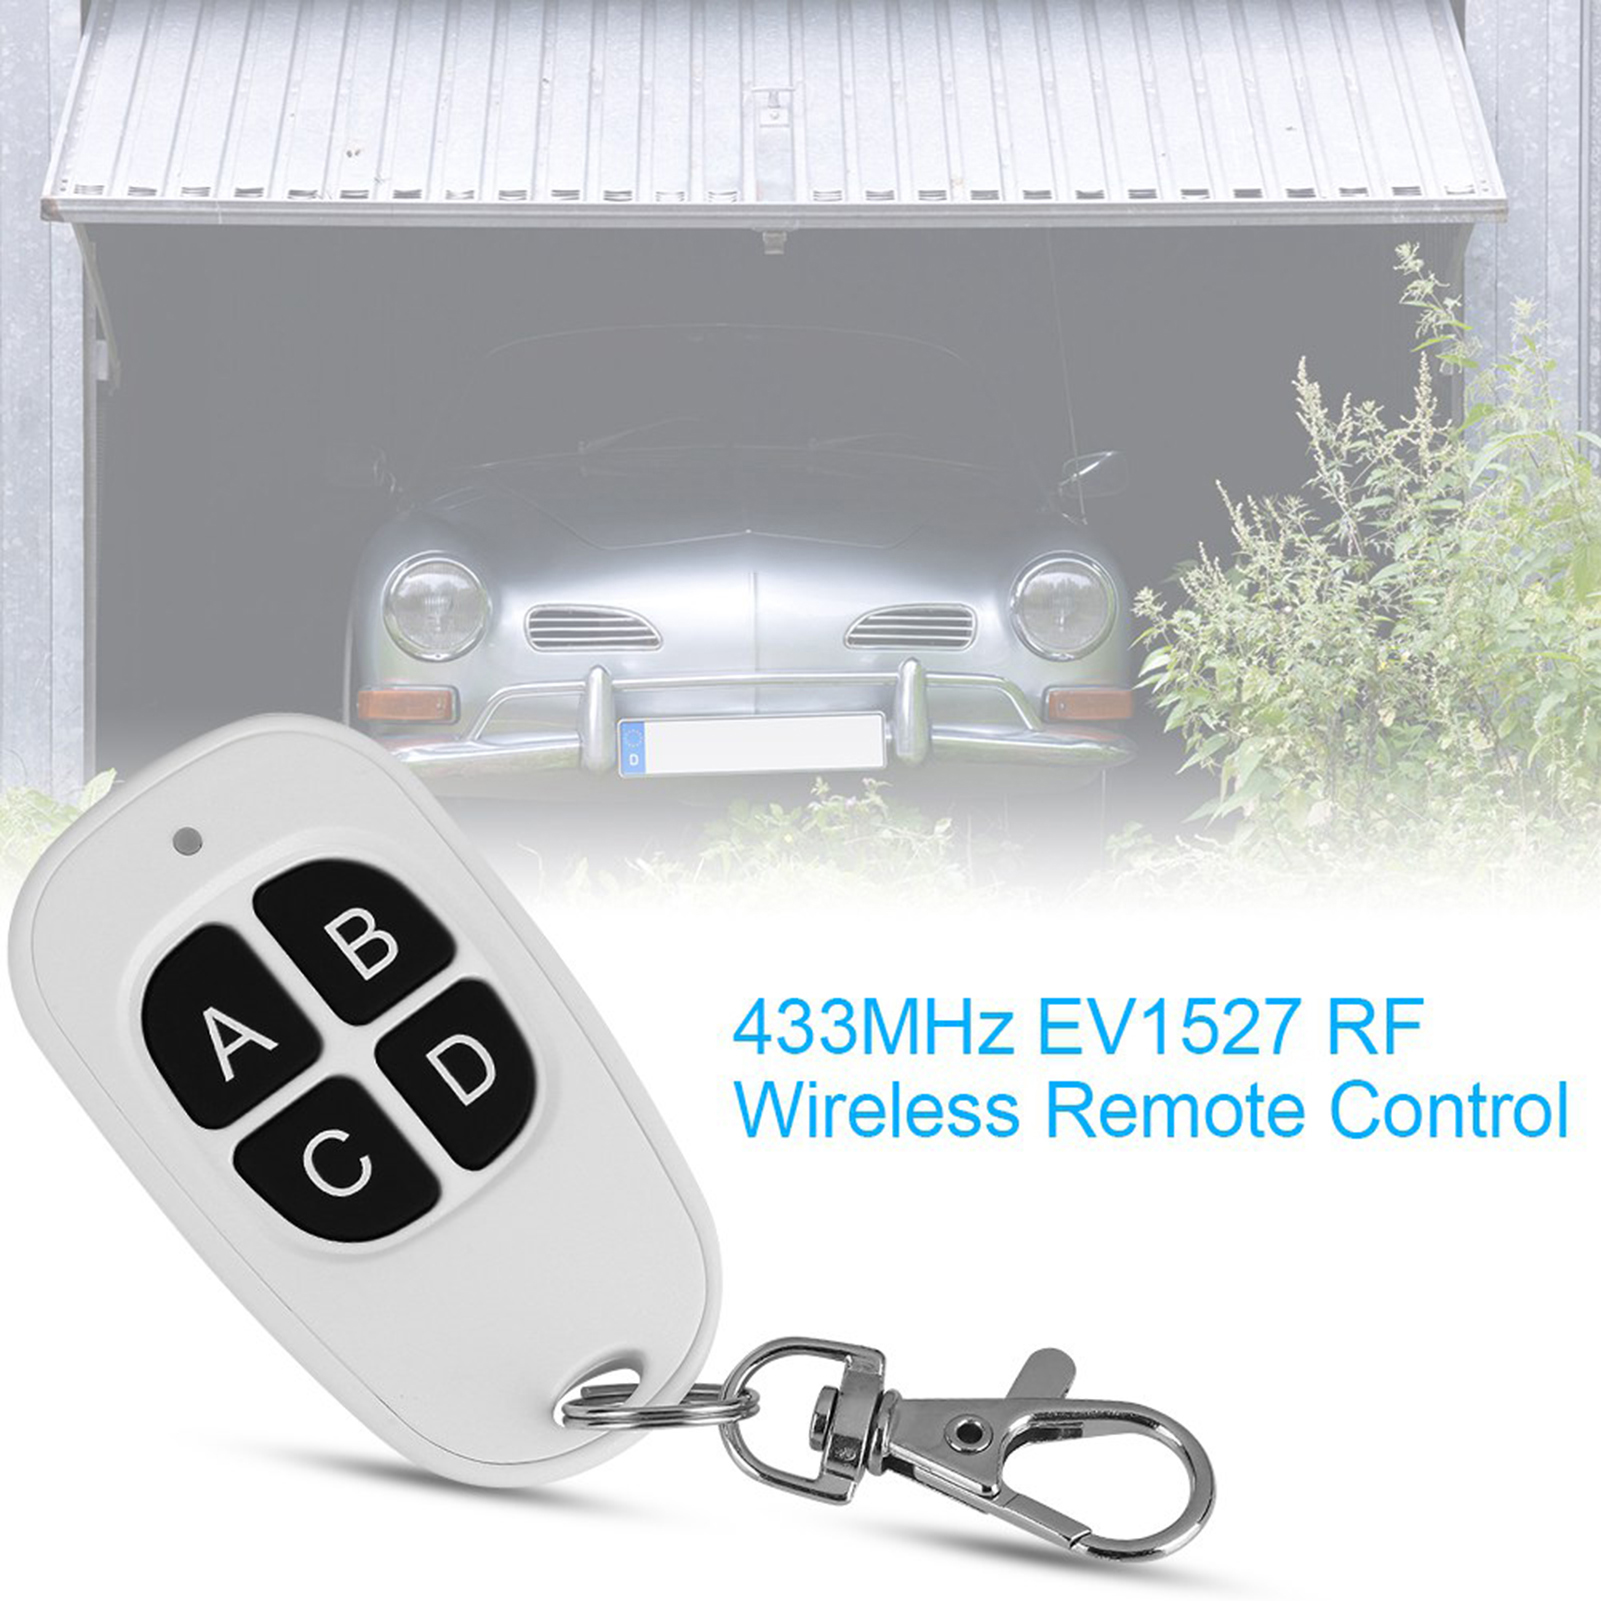 433MHz-EV1527-RF-Wireless-Transmitter-Garage-Door-1-4-Channel-Key-Remote-Control miniature 48